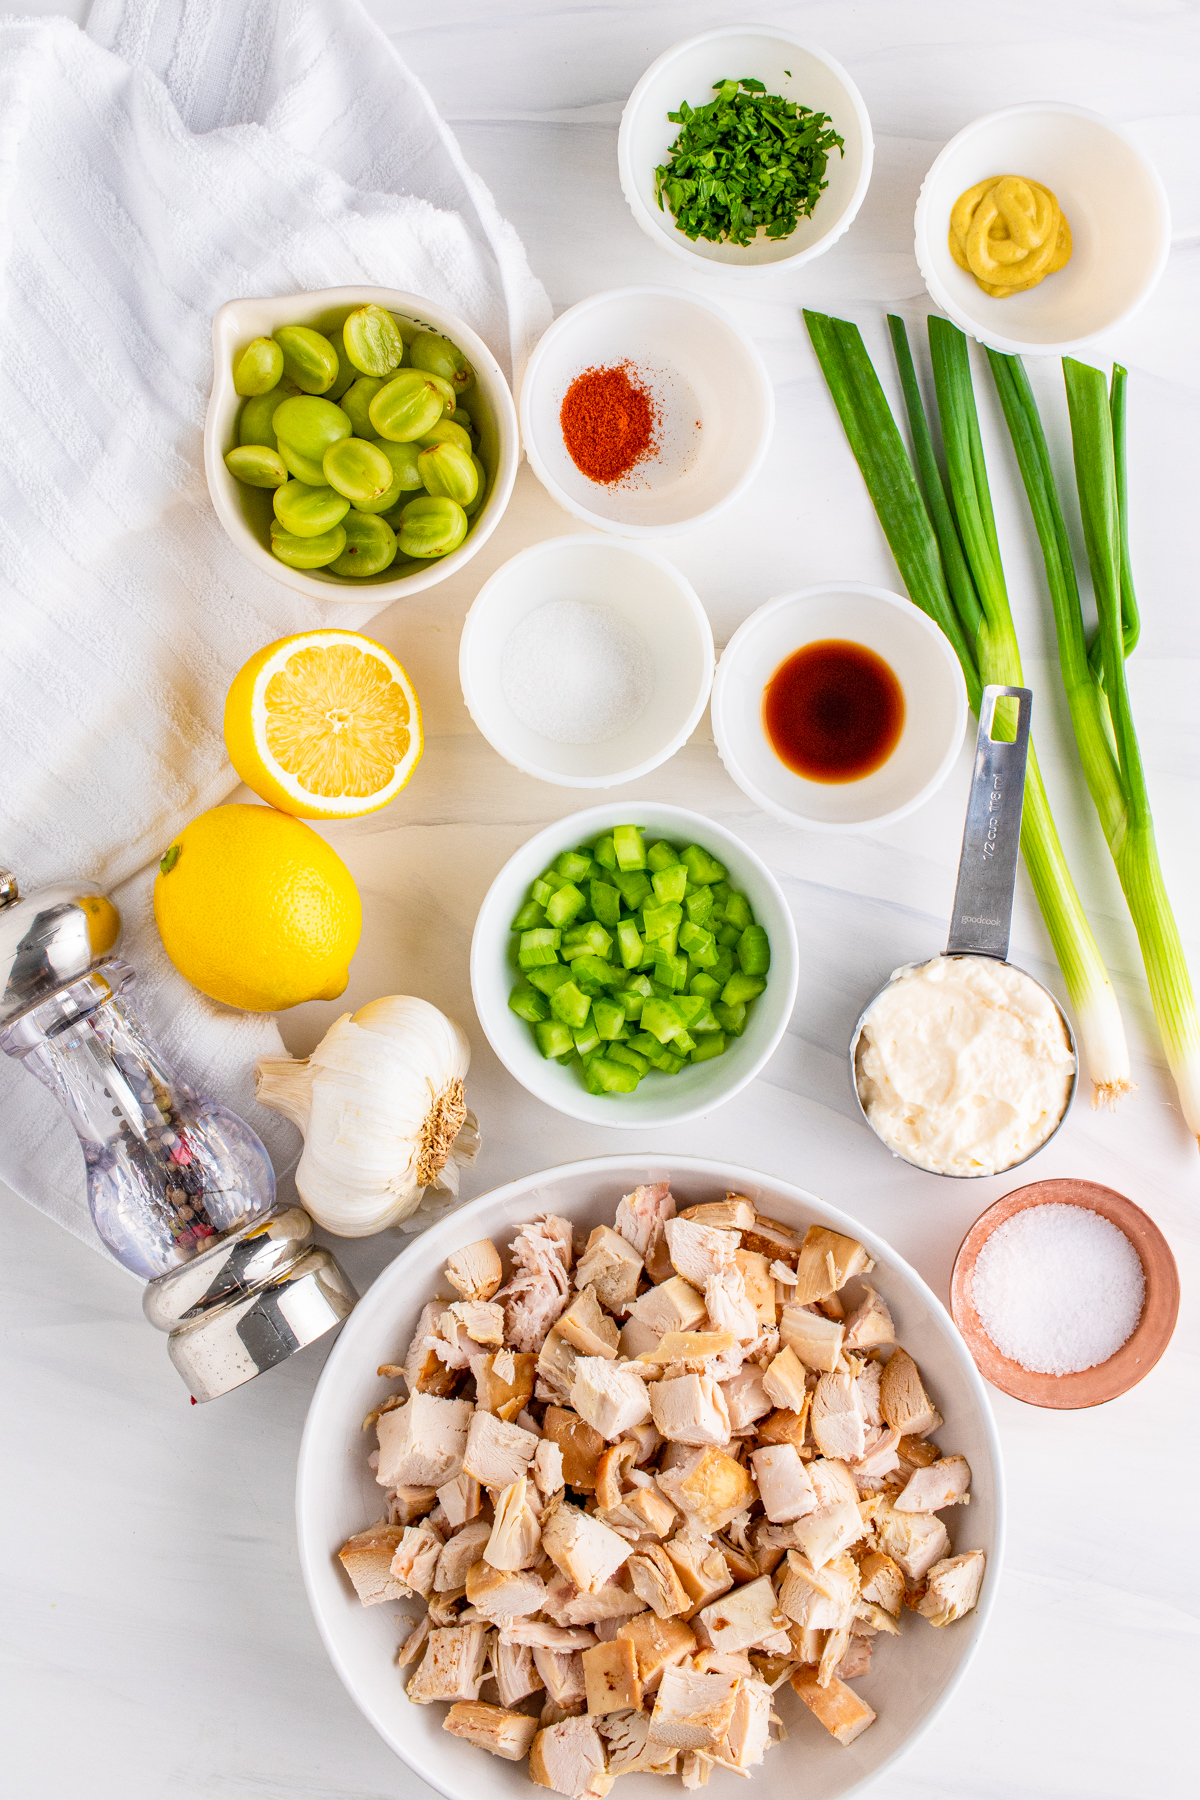 Ingredients needed to make Chicken Salad with Grapes